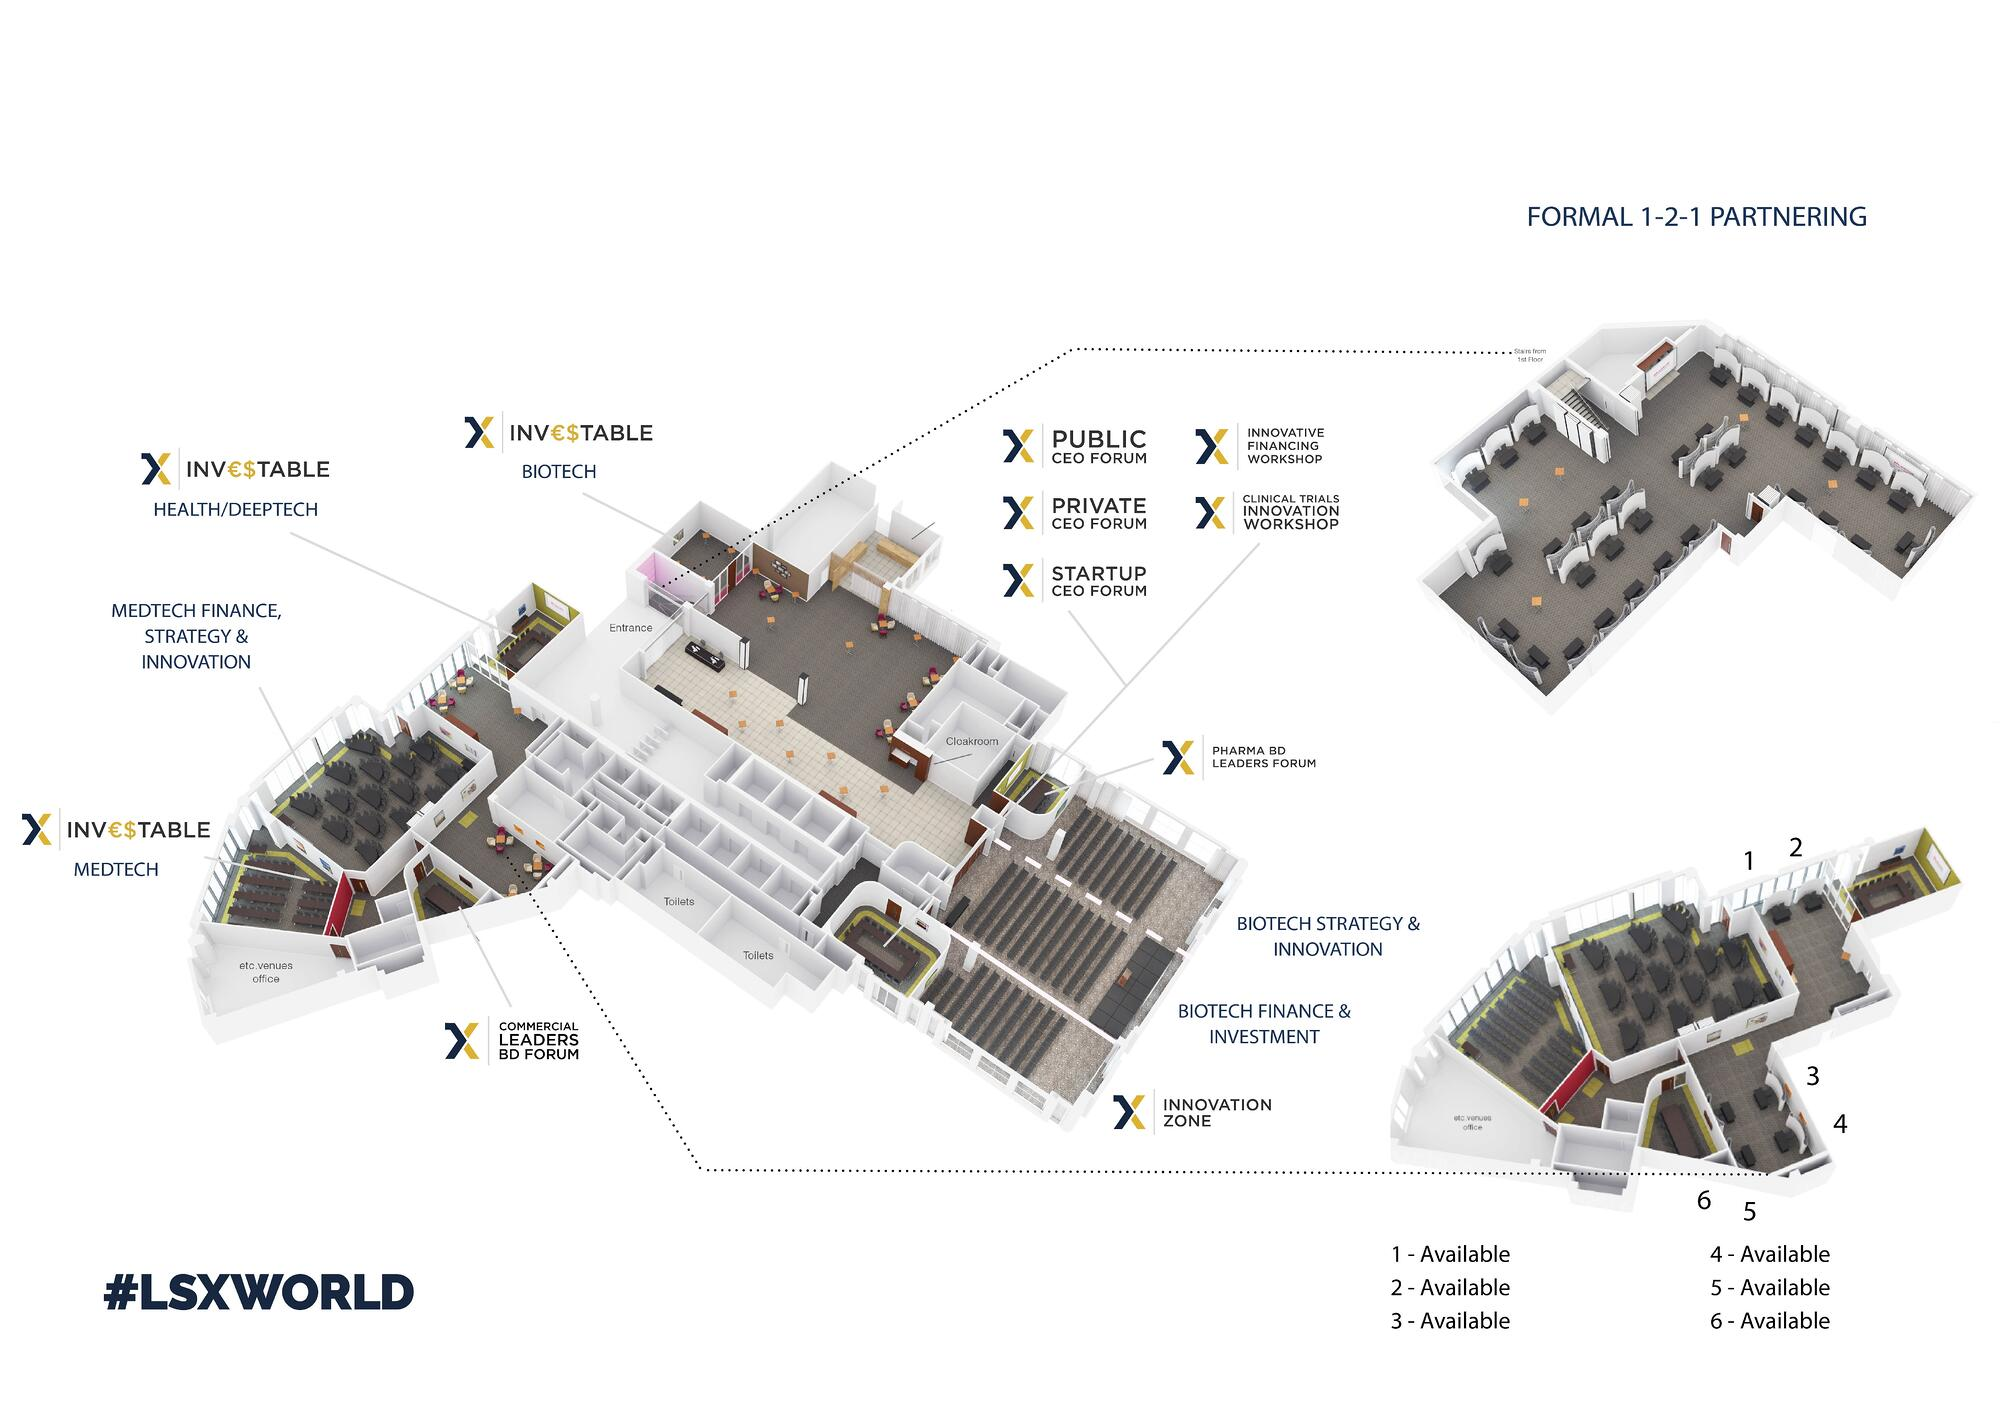 Floor plan for the LSX World Congress formerly known as Biotech and Money Congress